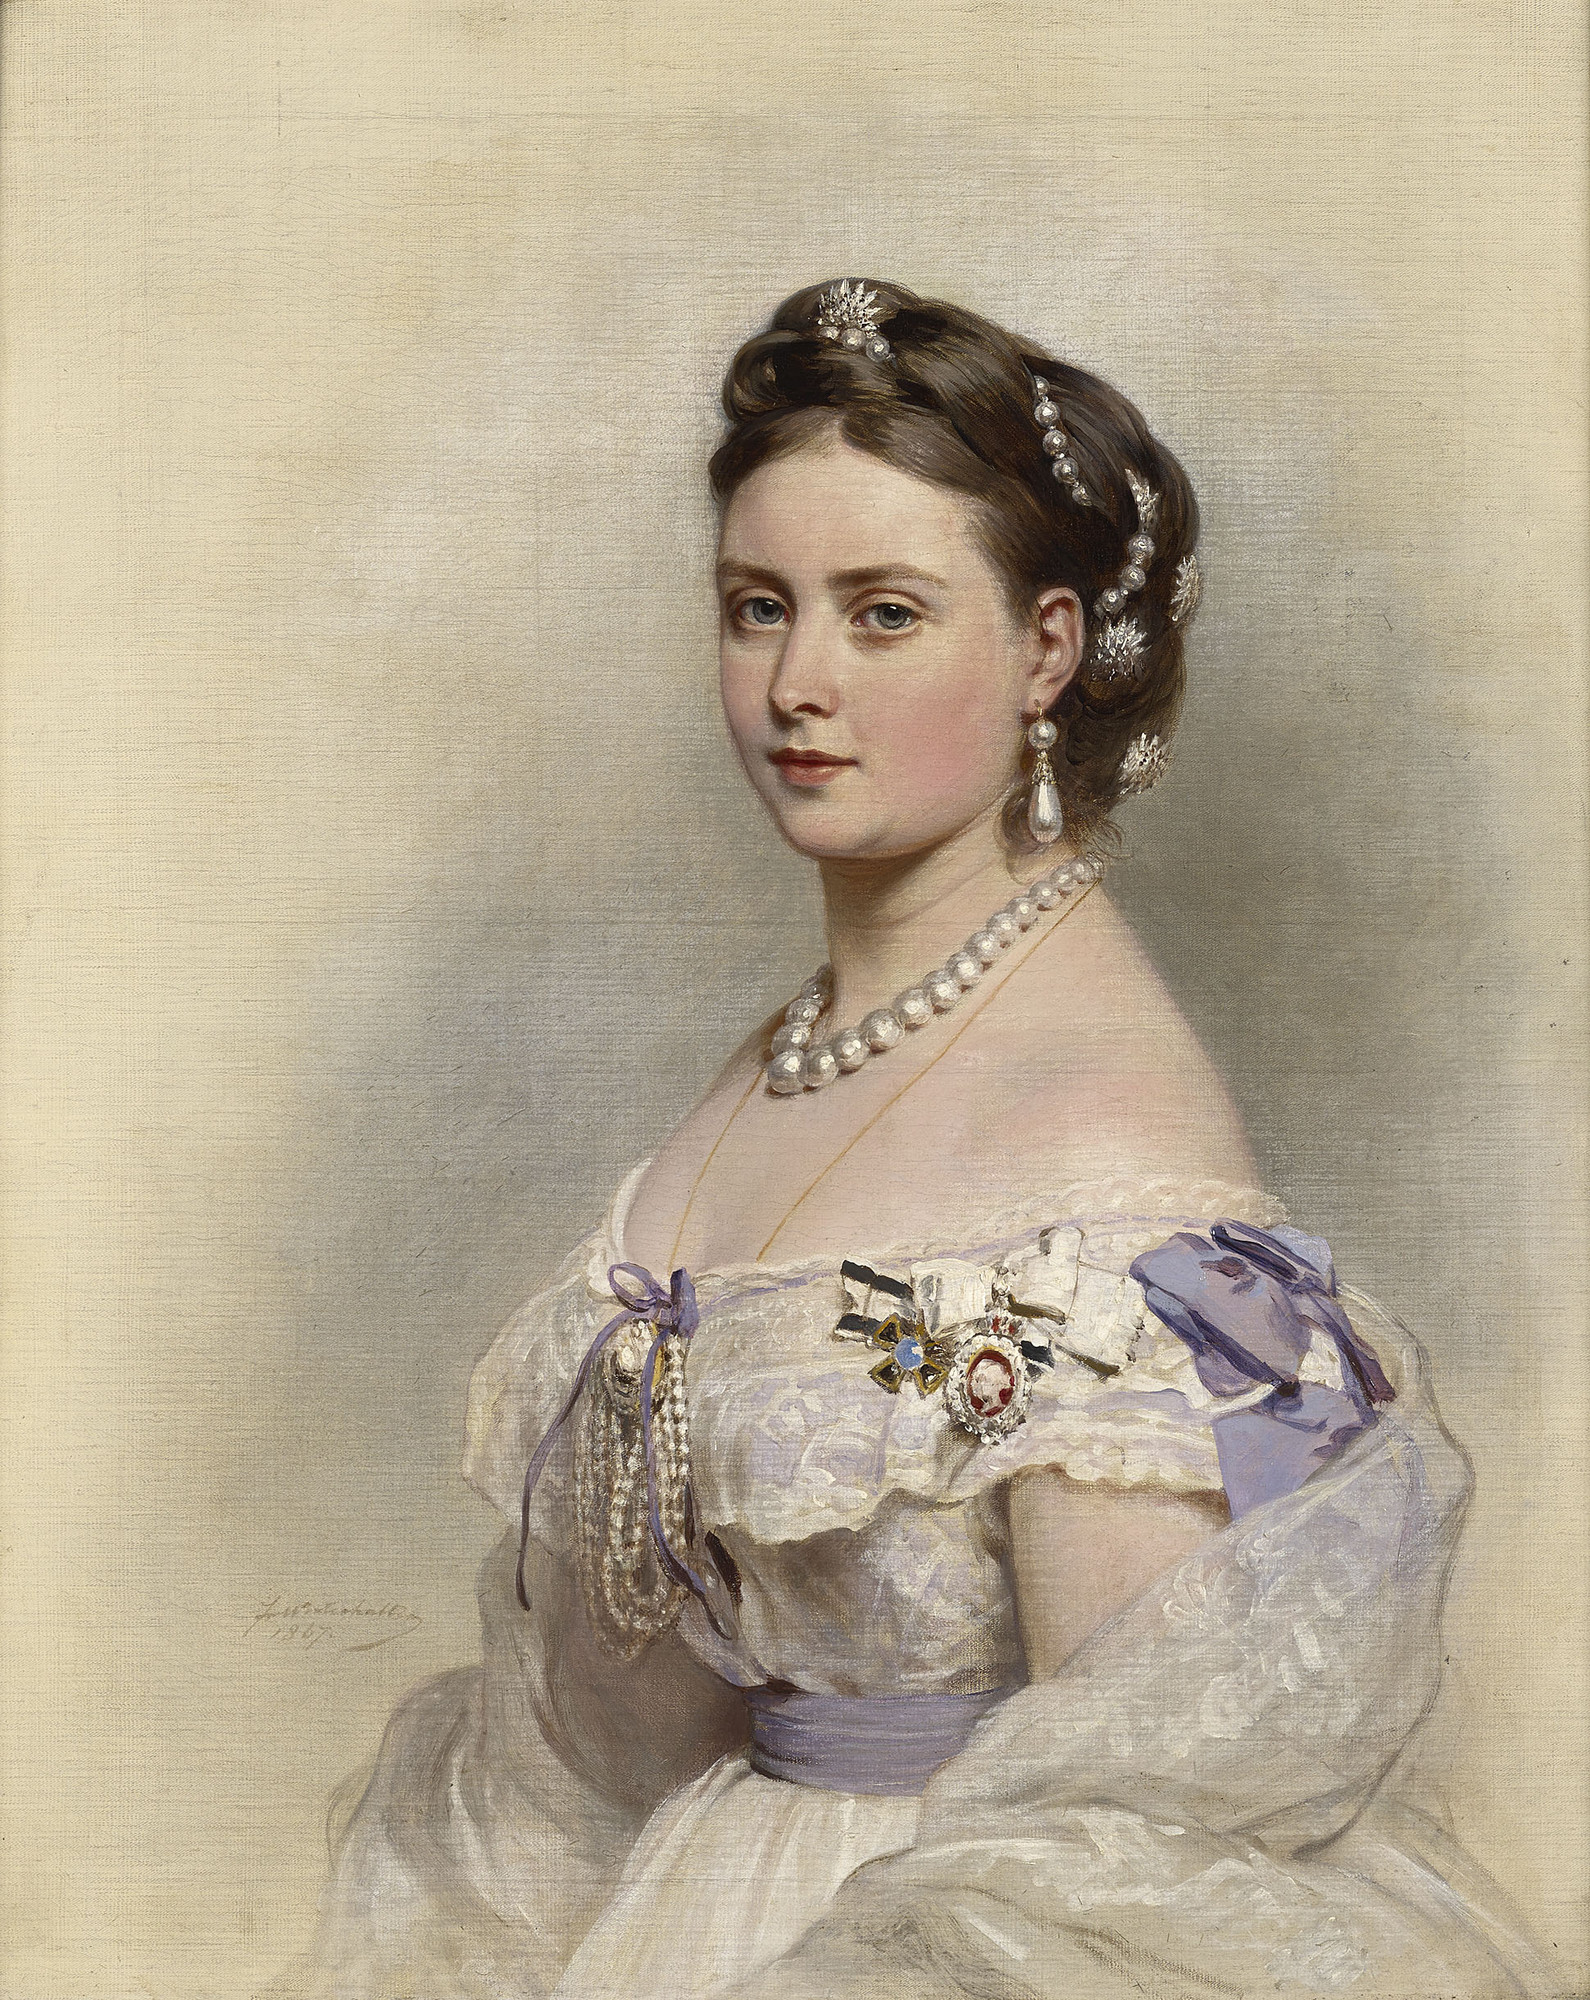 http://upload.wikimedia.org/wikipedia/commons/0/0a/Victoria%2C_Princess_Royal.jpg